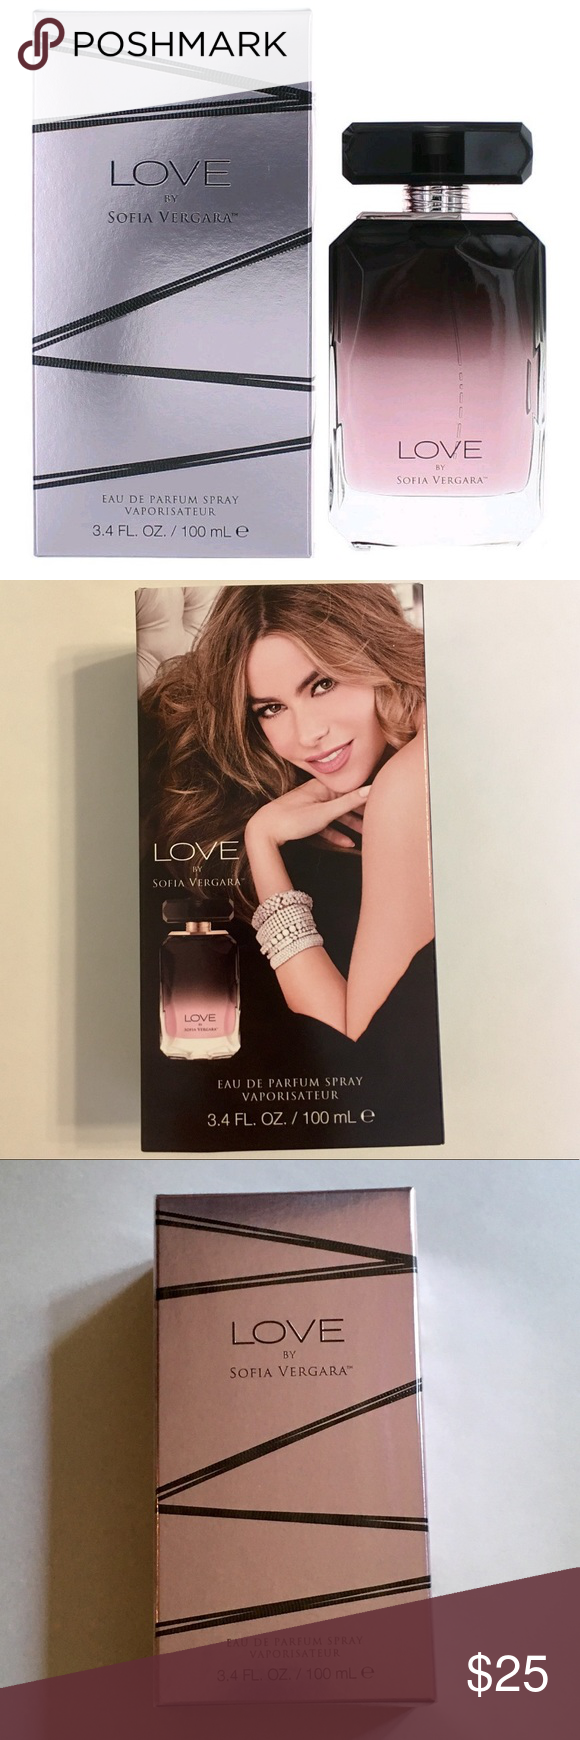 "NWT LOVE Perfume by Sofia Vergara Brand new, unopened 3.4 oz LOVE perfume by Sofia Vergara. Described as a ""sultry, magnetic oriental fruity fragrance"" with its top notes being mandarin, passion fruit, & orange blossom. Would make a great gift! Make an offer!! Other"